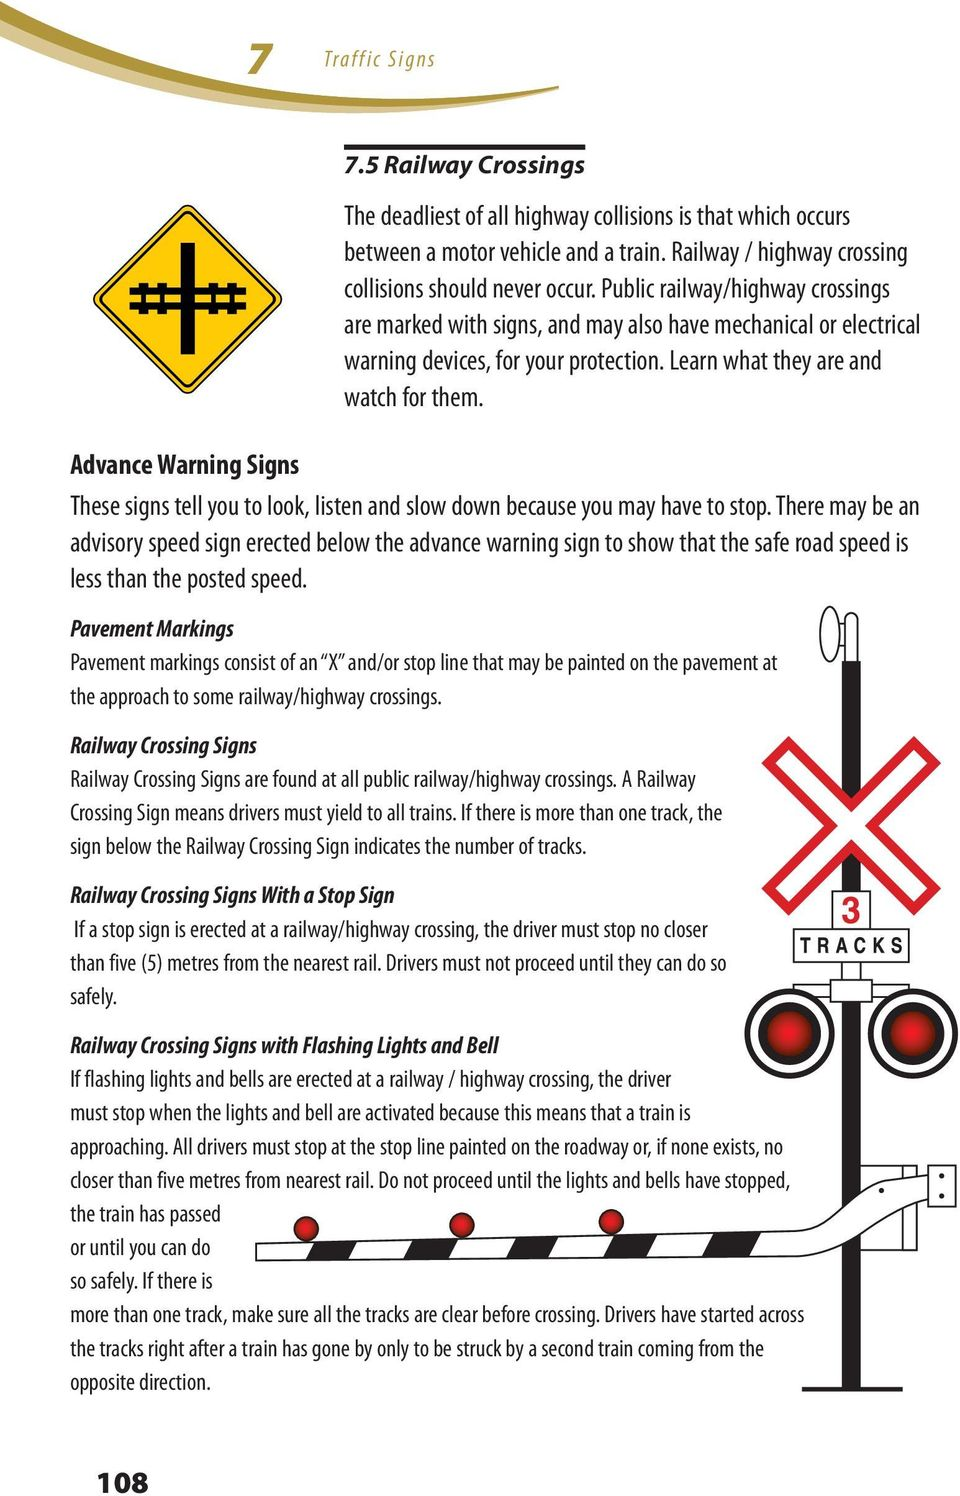 Learn what they are and watch for them. These signs tell you to look, listen and slow down because you may have to stop.